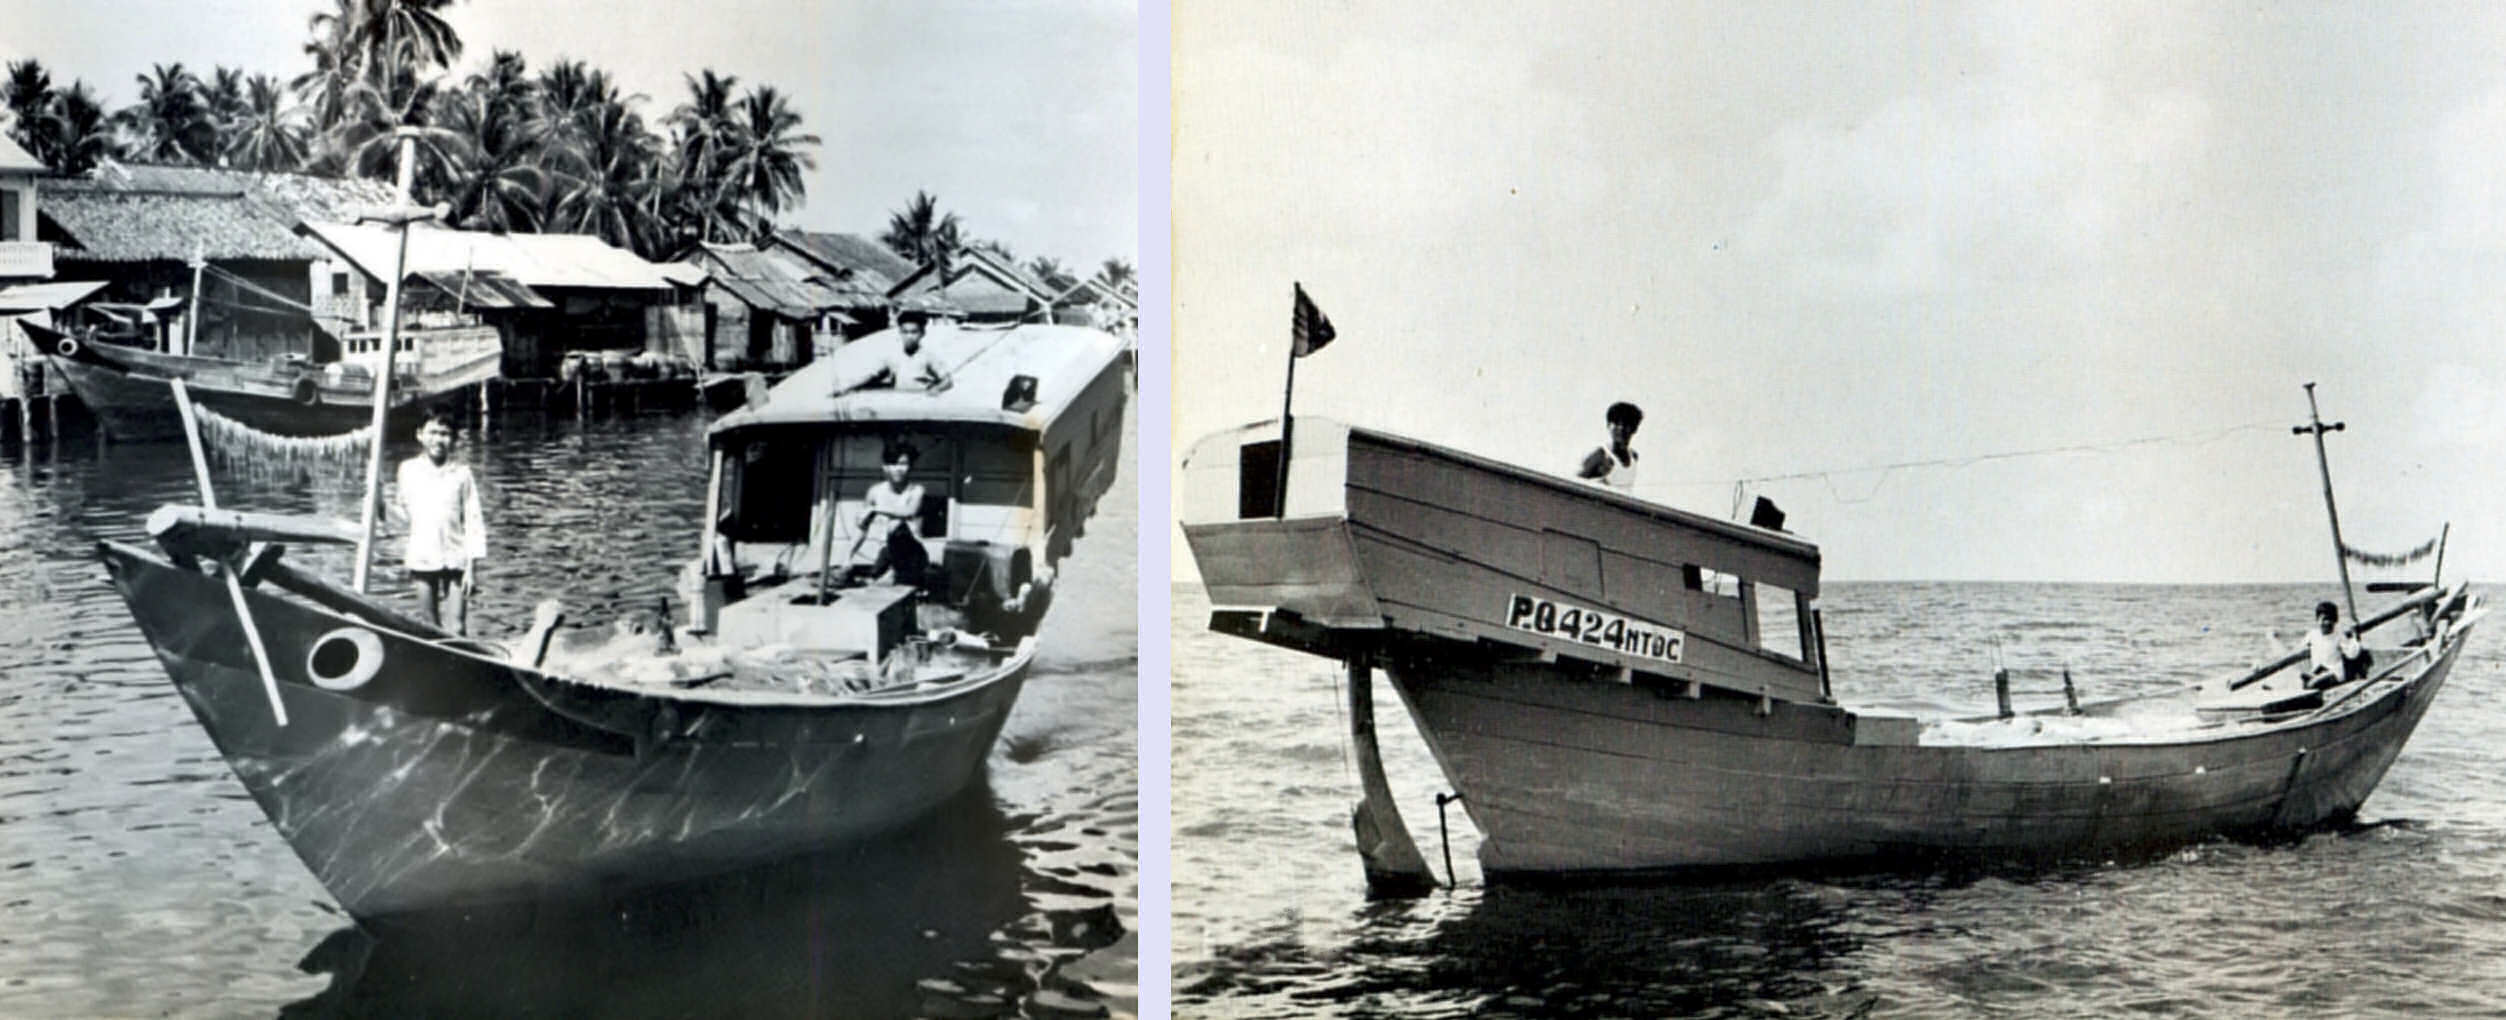 Bow and stern views of 1960 era Phu Quoc Island boat with dramatically cantilevered cabin.